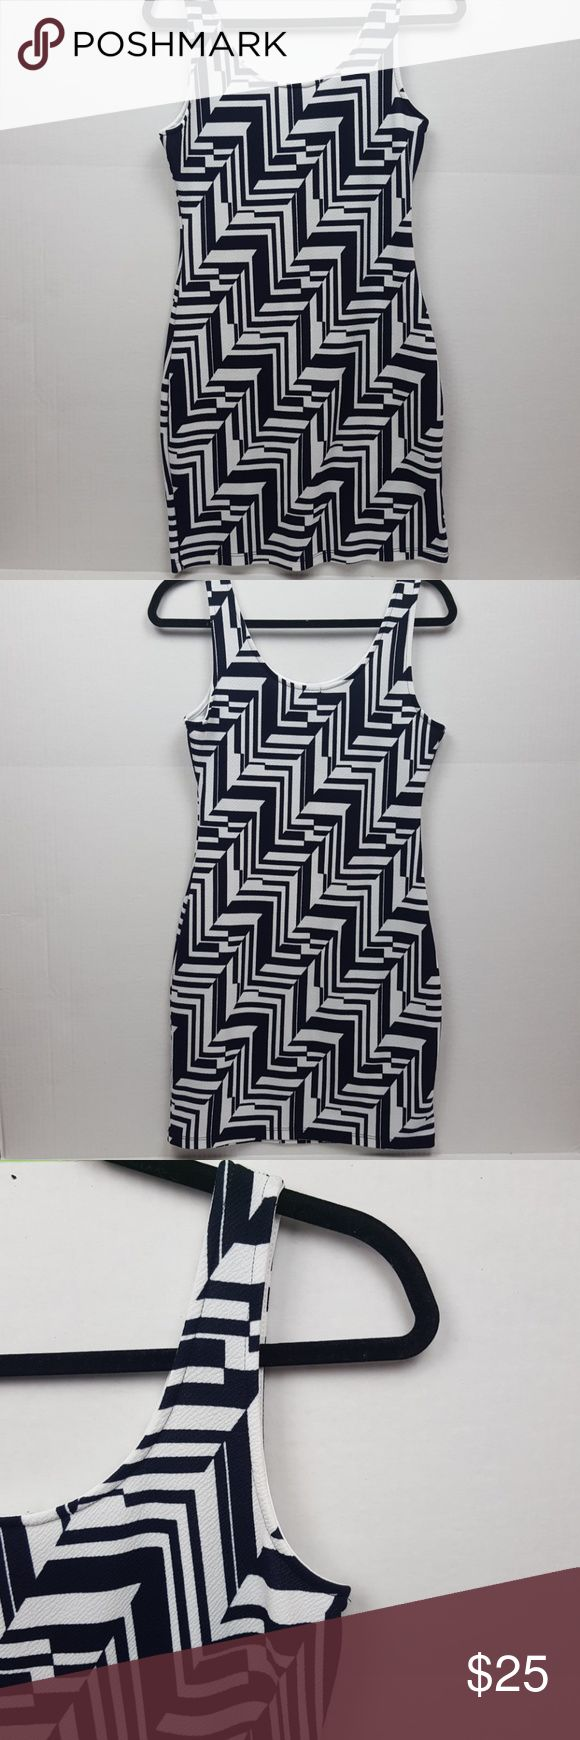 Soprano black and white geometric bodycon dress This is a Soprano black and white bodycon mini dress with a Aztec/geometric print. The dress is in excellent used condition and perfect for a New Years party. Made in USA. Geometric party/evening dress.  Materials - 95% polyester 5% spandex Soprano Dresses Mini